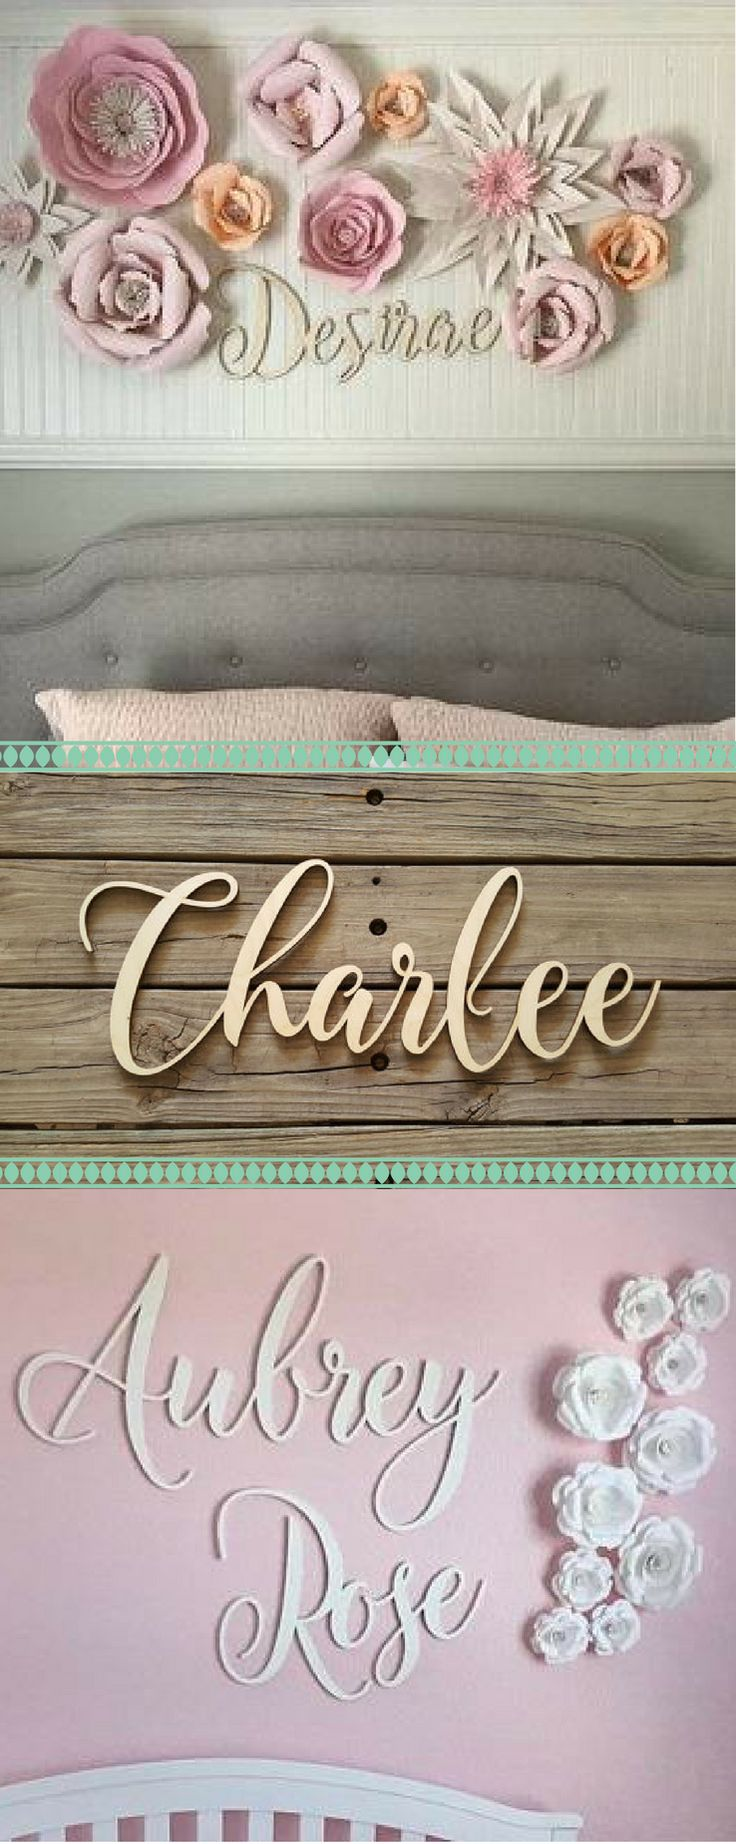 Cool cursive decal! This is a great idea for name décor for my baby girl's nursery ♡ Maybe I could DIY this wood sign… #ad